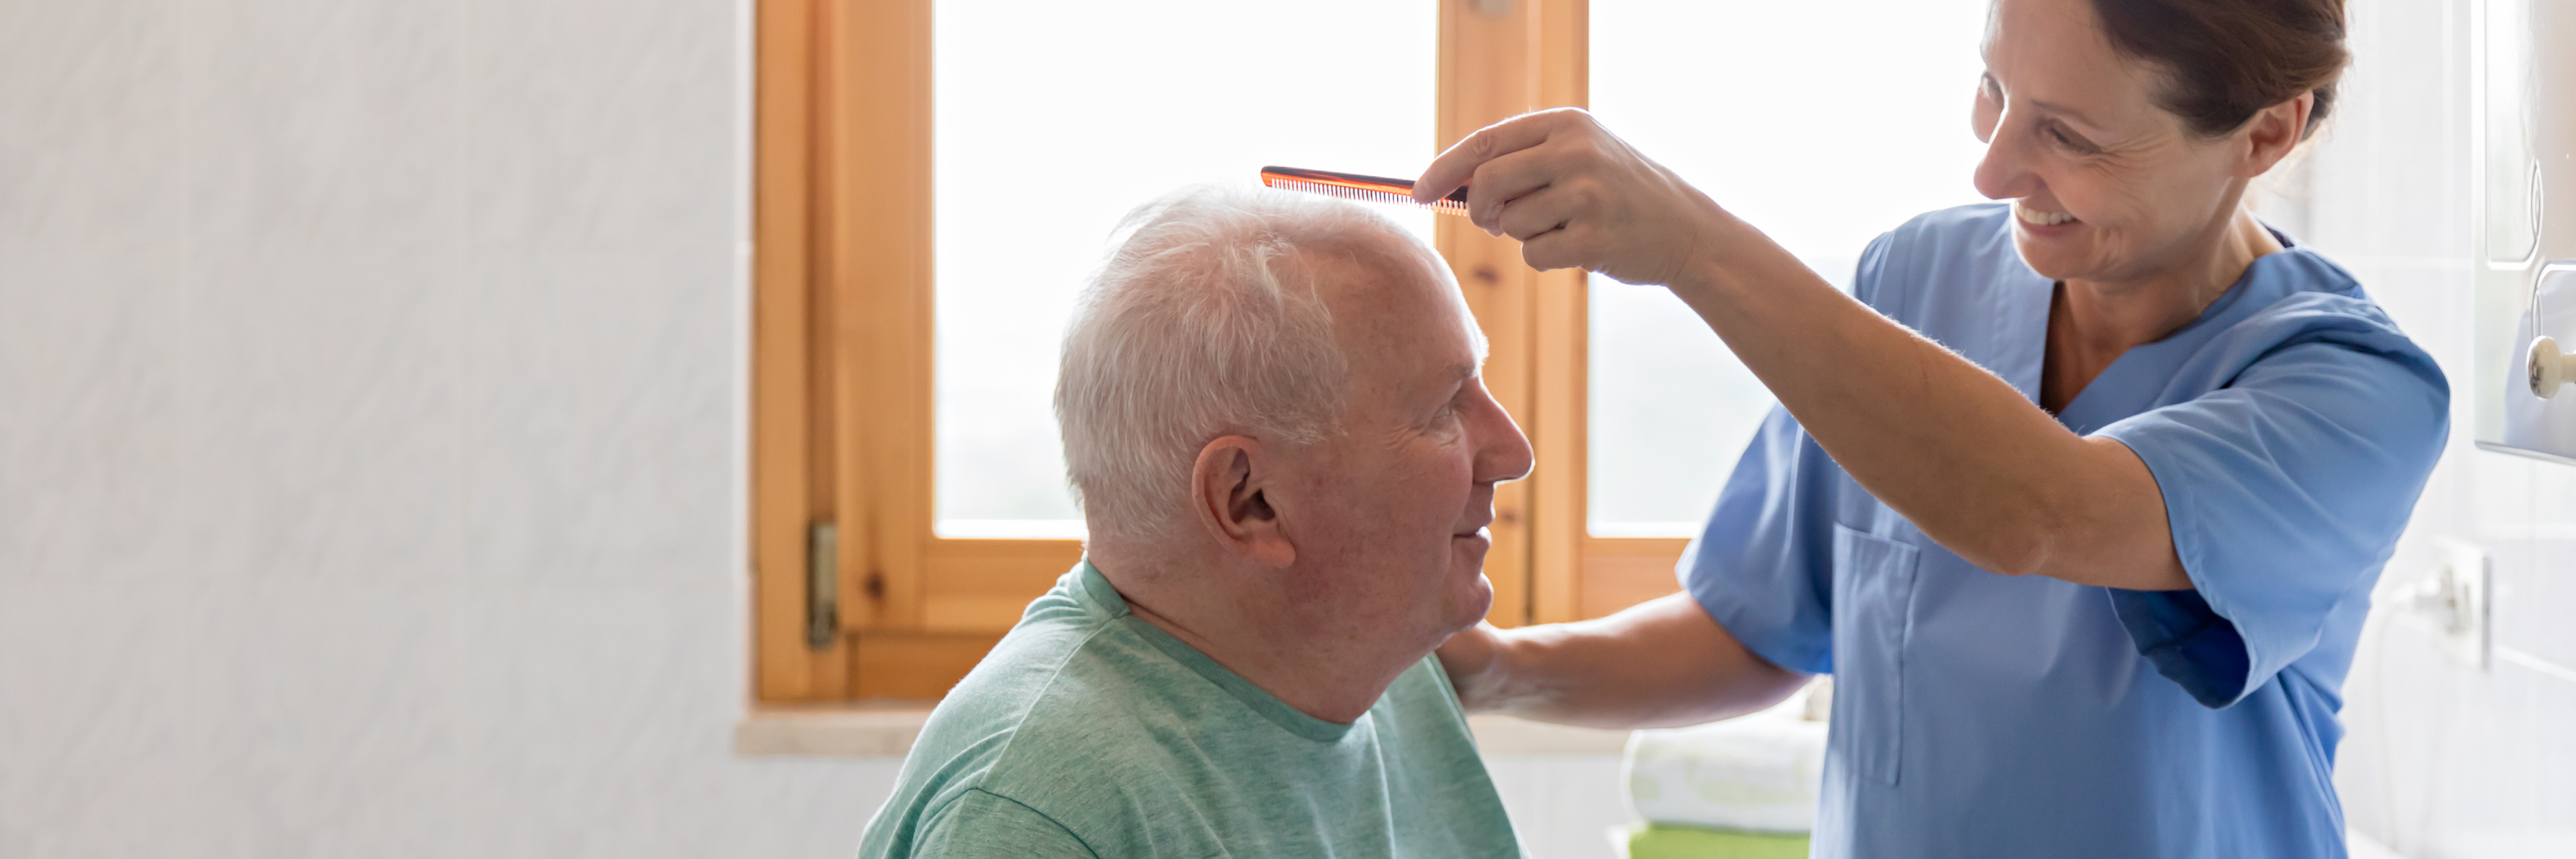 Female nurse combing older man's hair